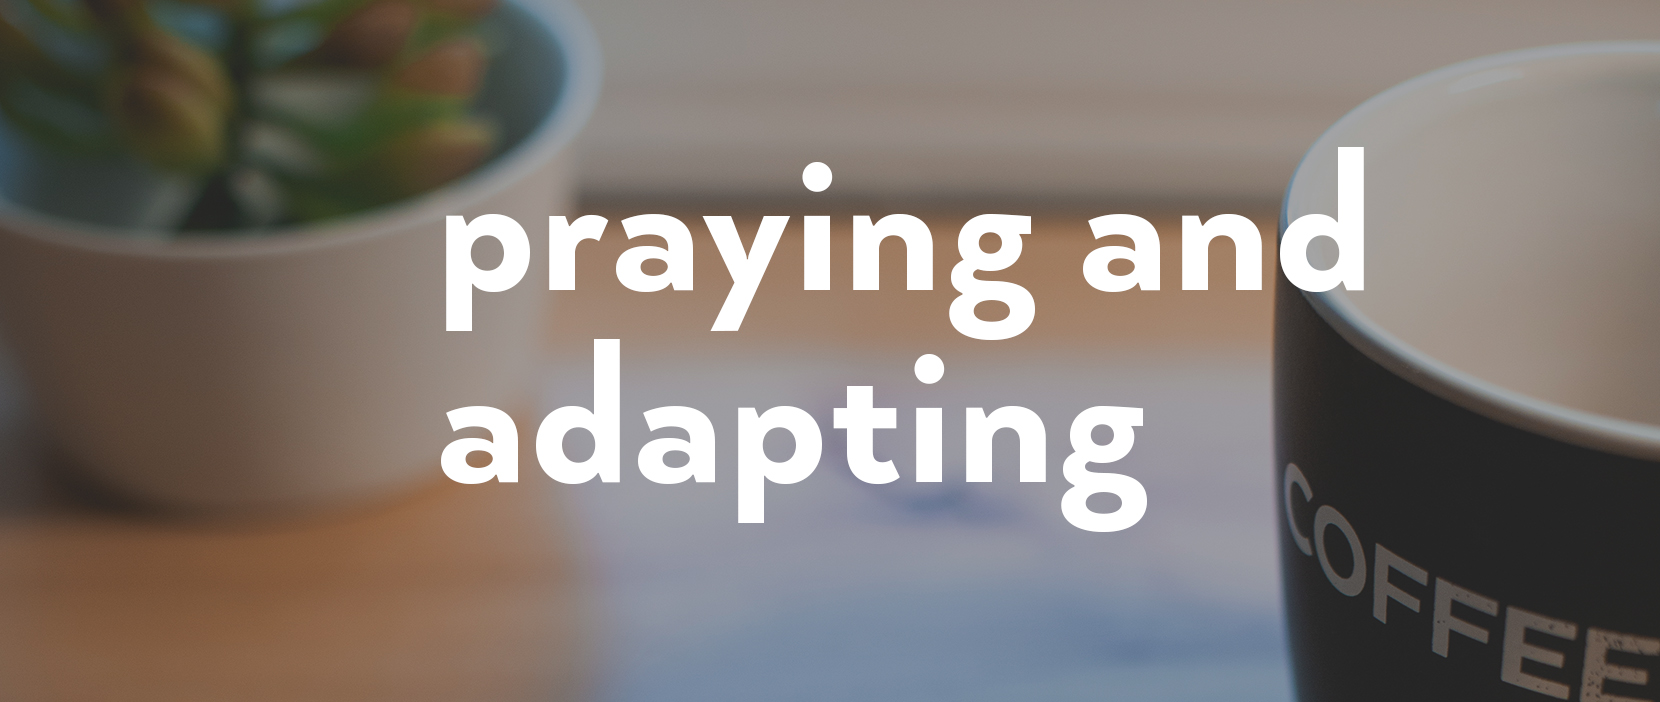 Featured Image for Praying and Adapting